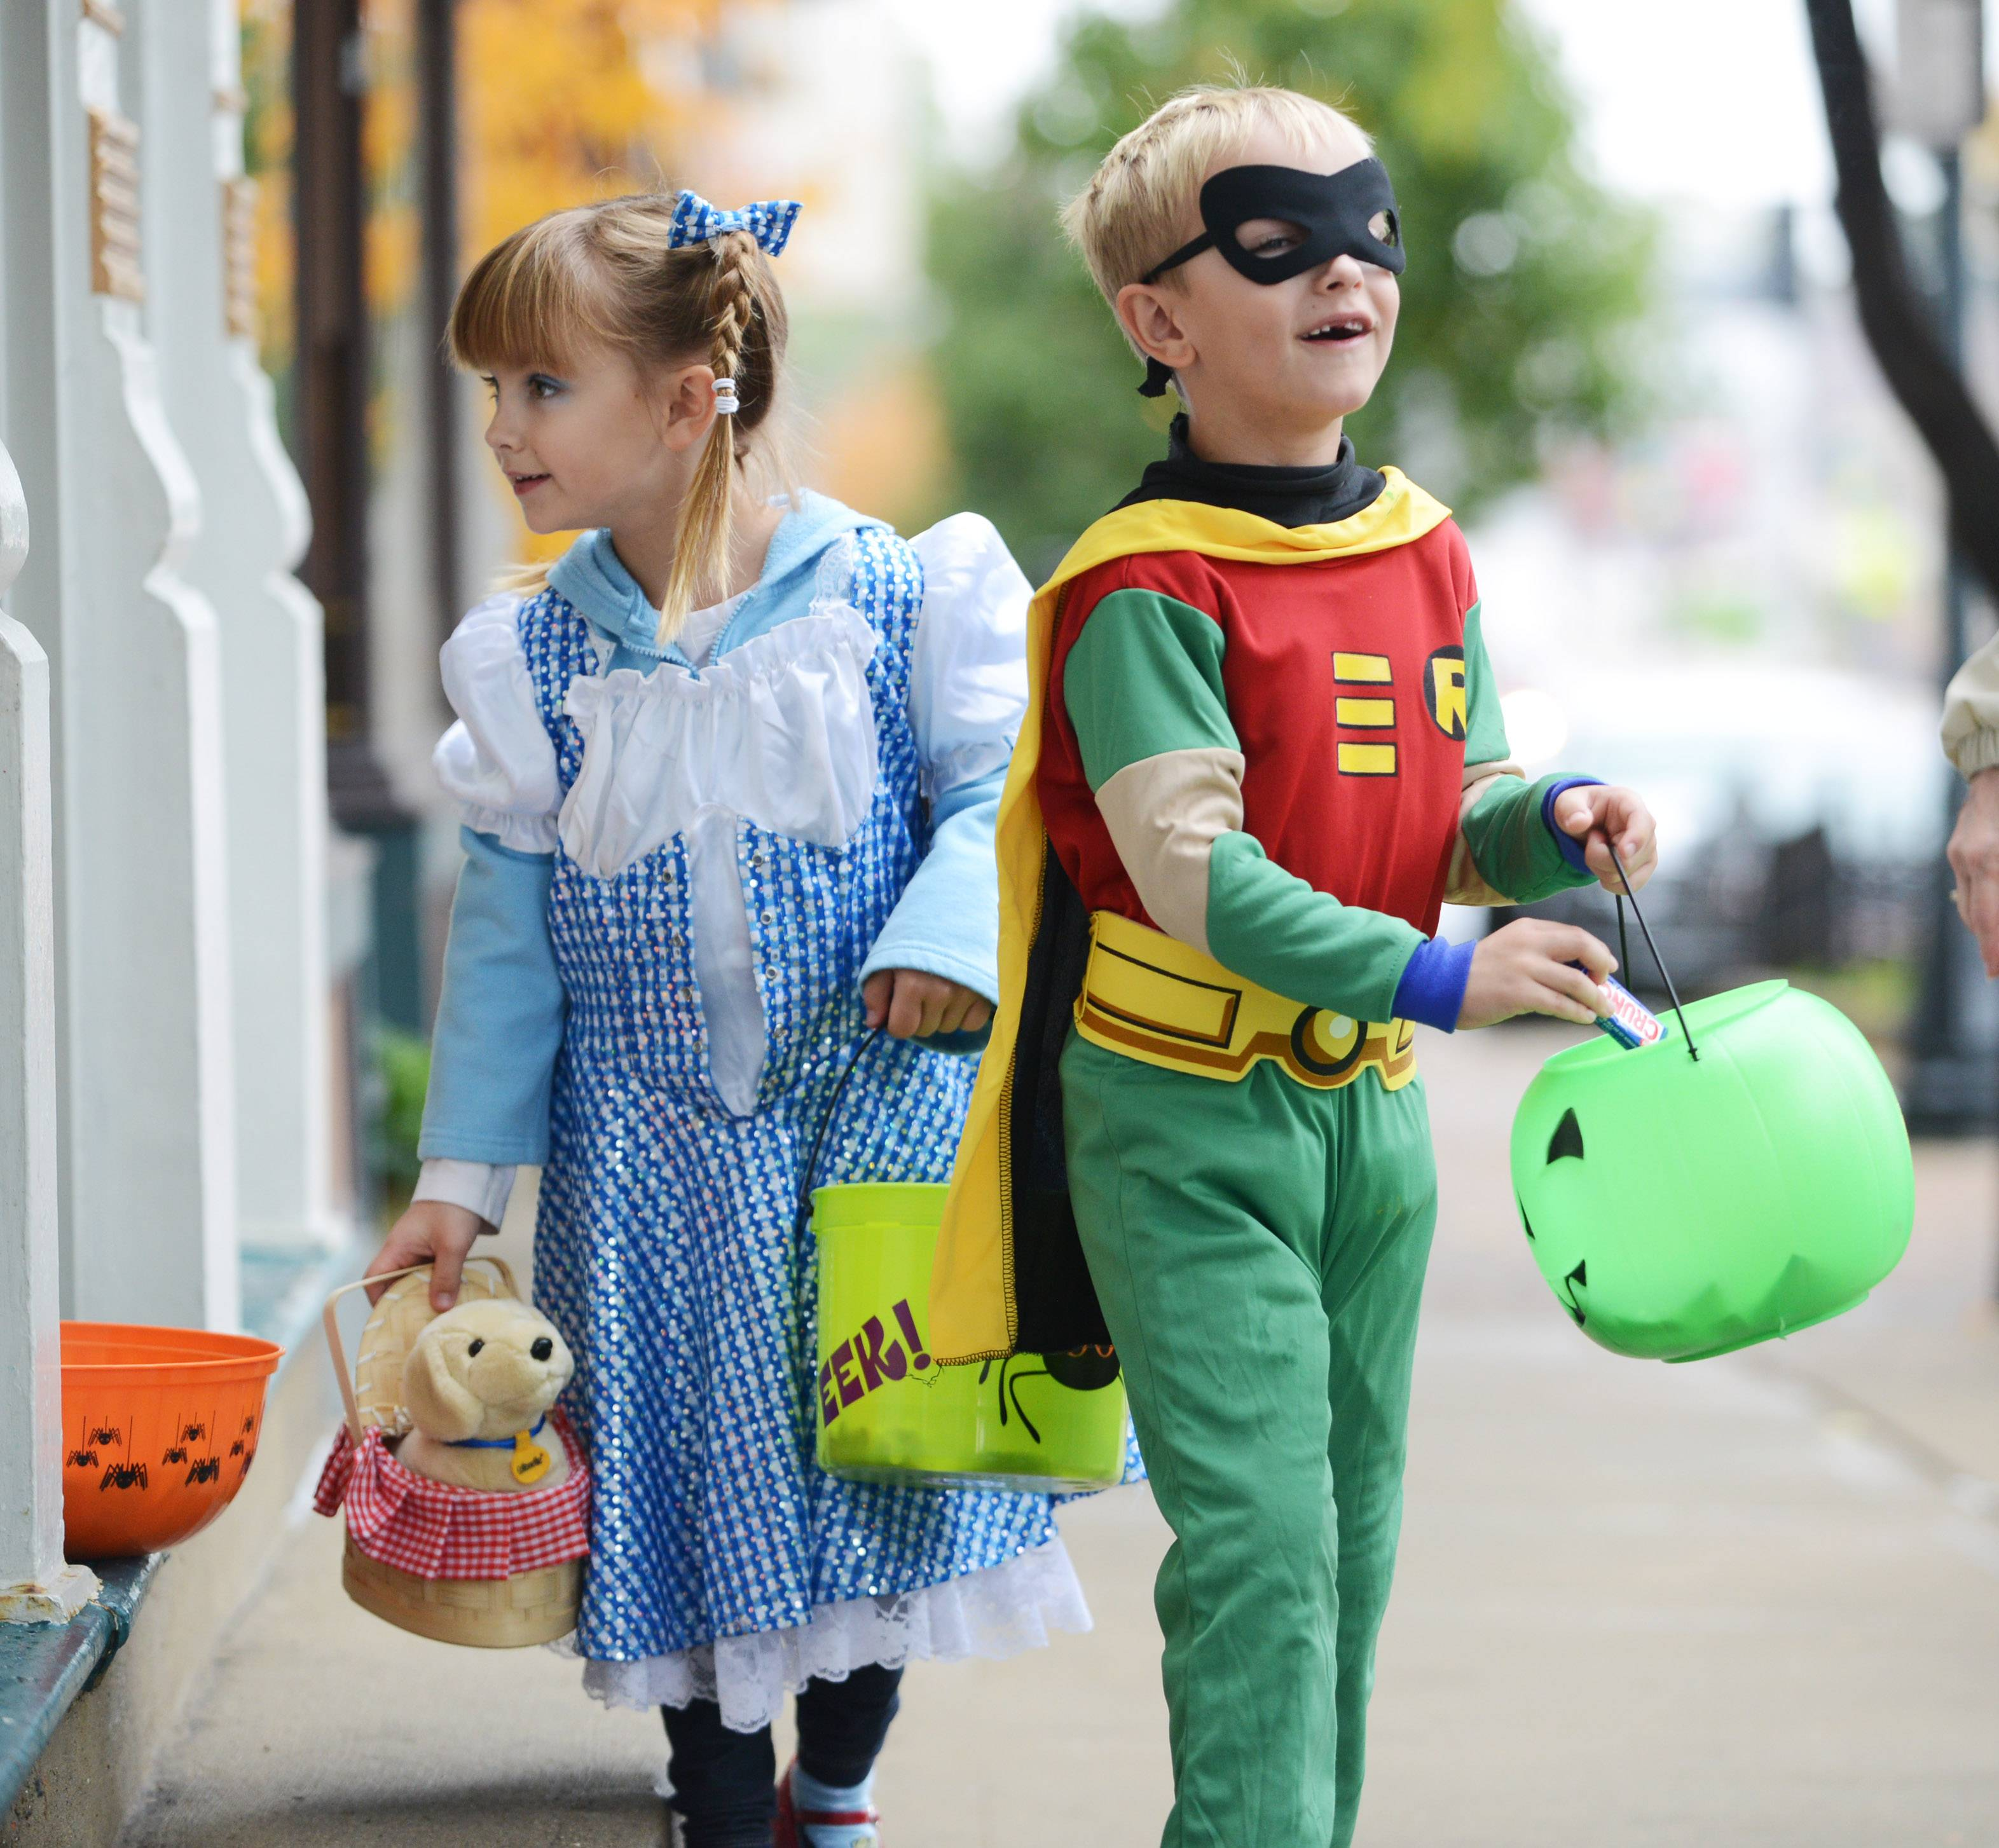 Trick-or-treat hours in the suburbs